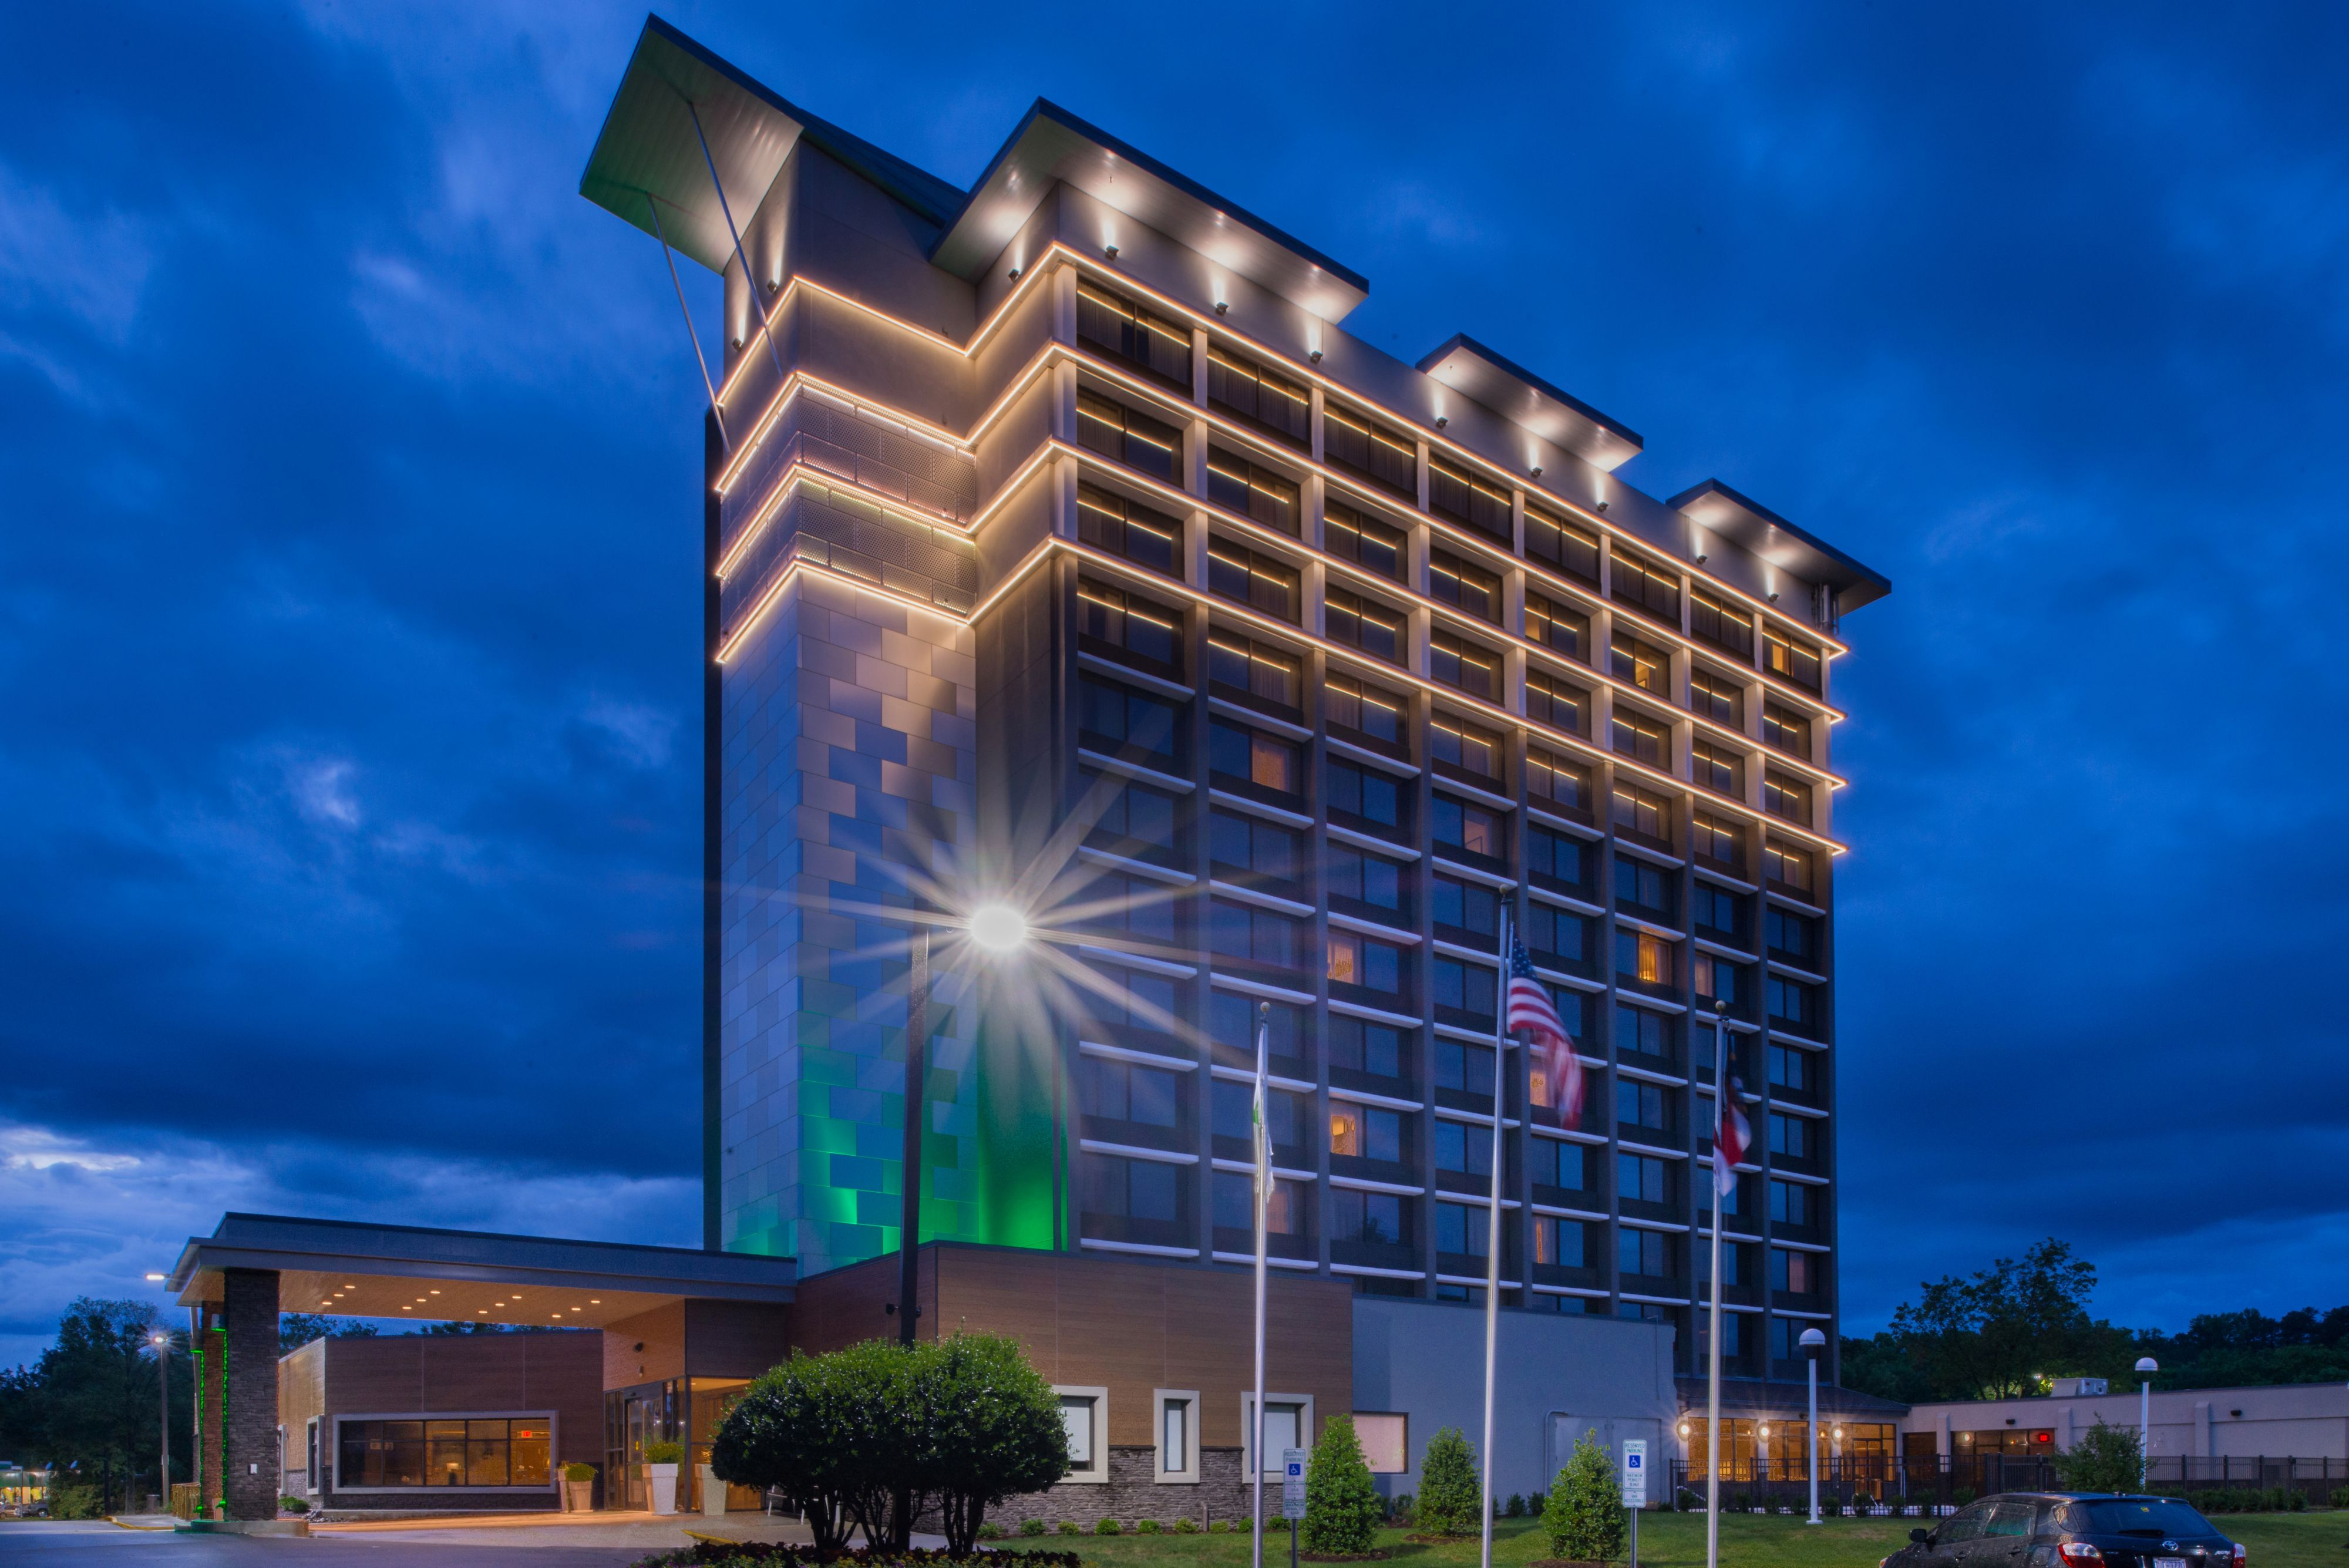 Holiday inn raleigh crabtree valley mall raleigh north - Hilton garden inn raleigh crabtree ...